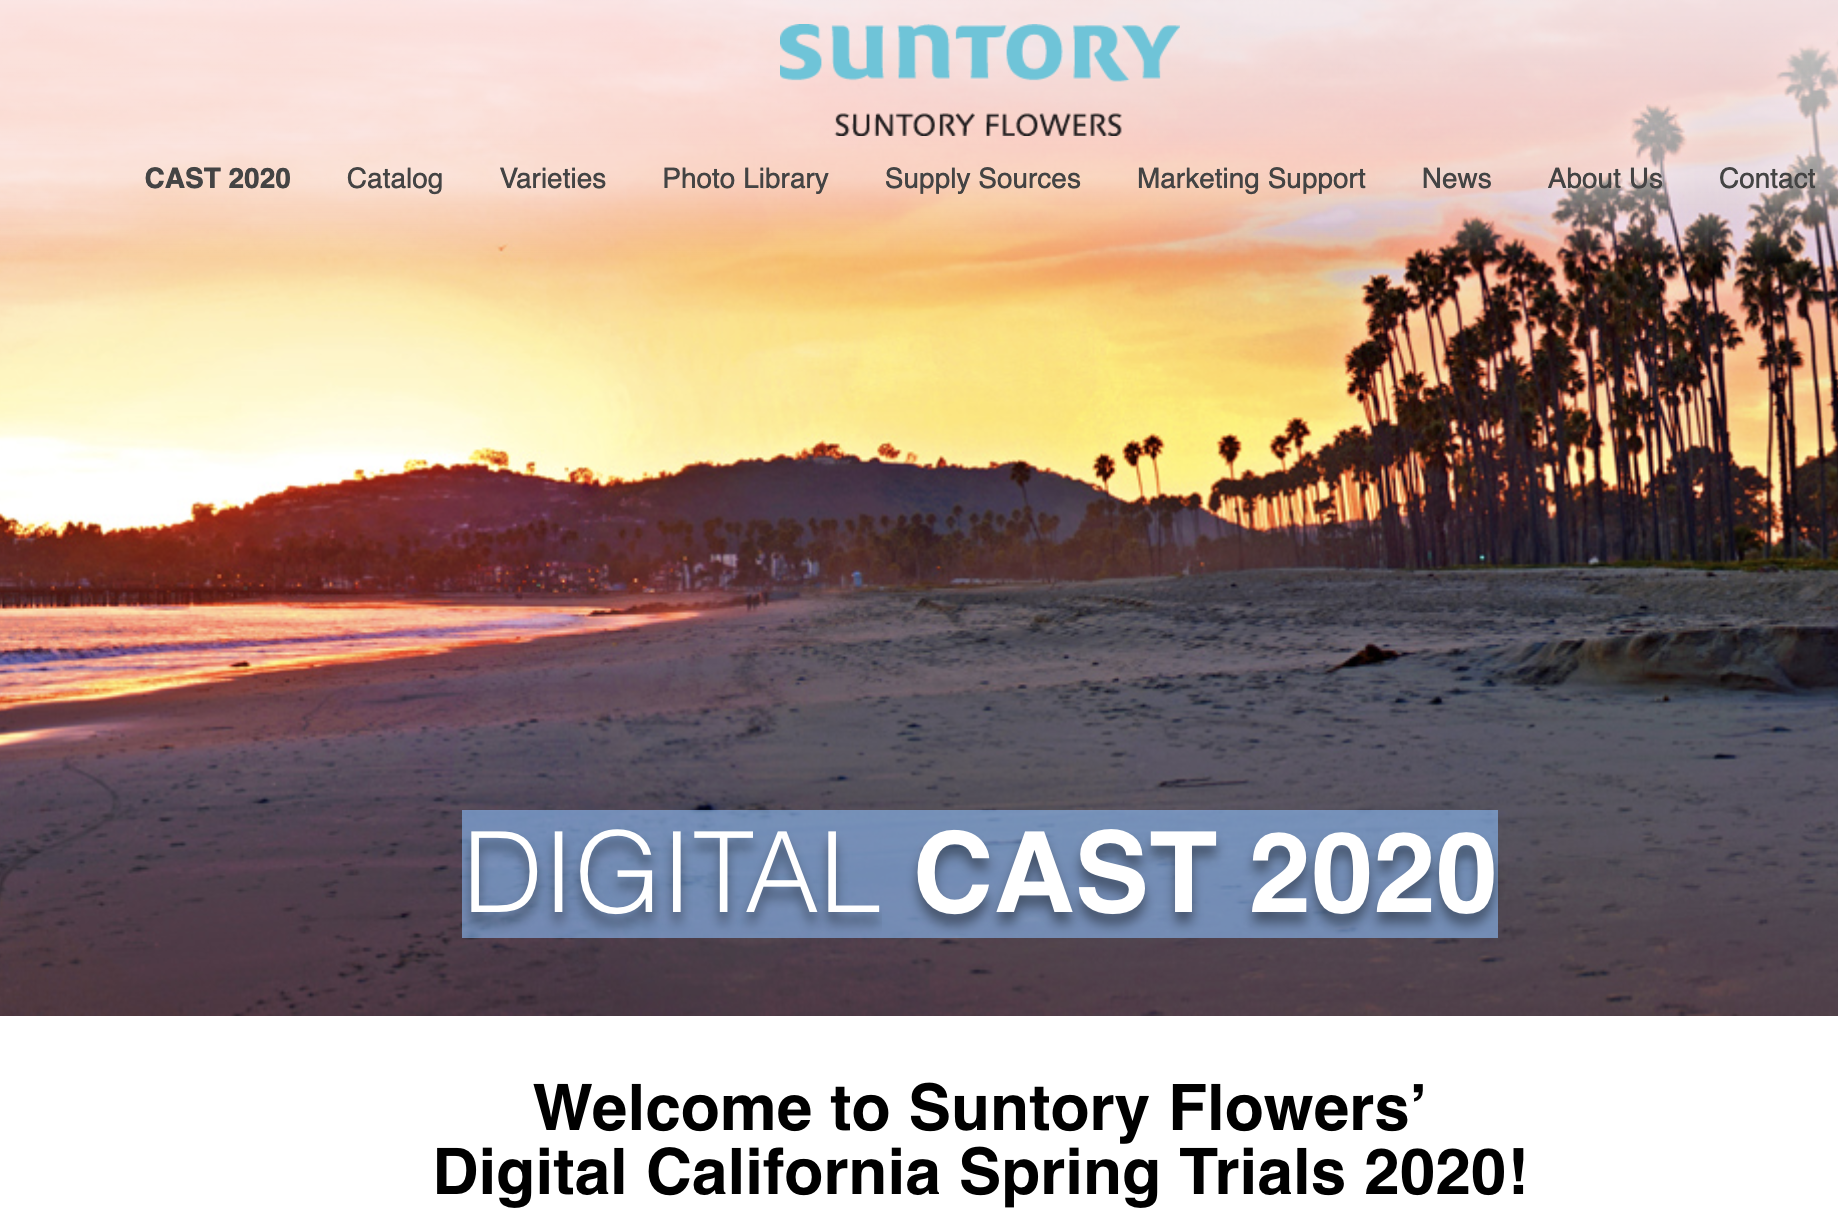 Suntory Digital Cast 2020